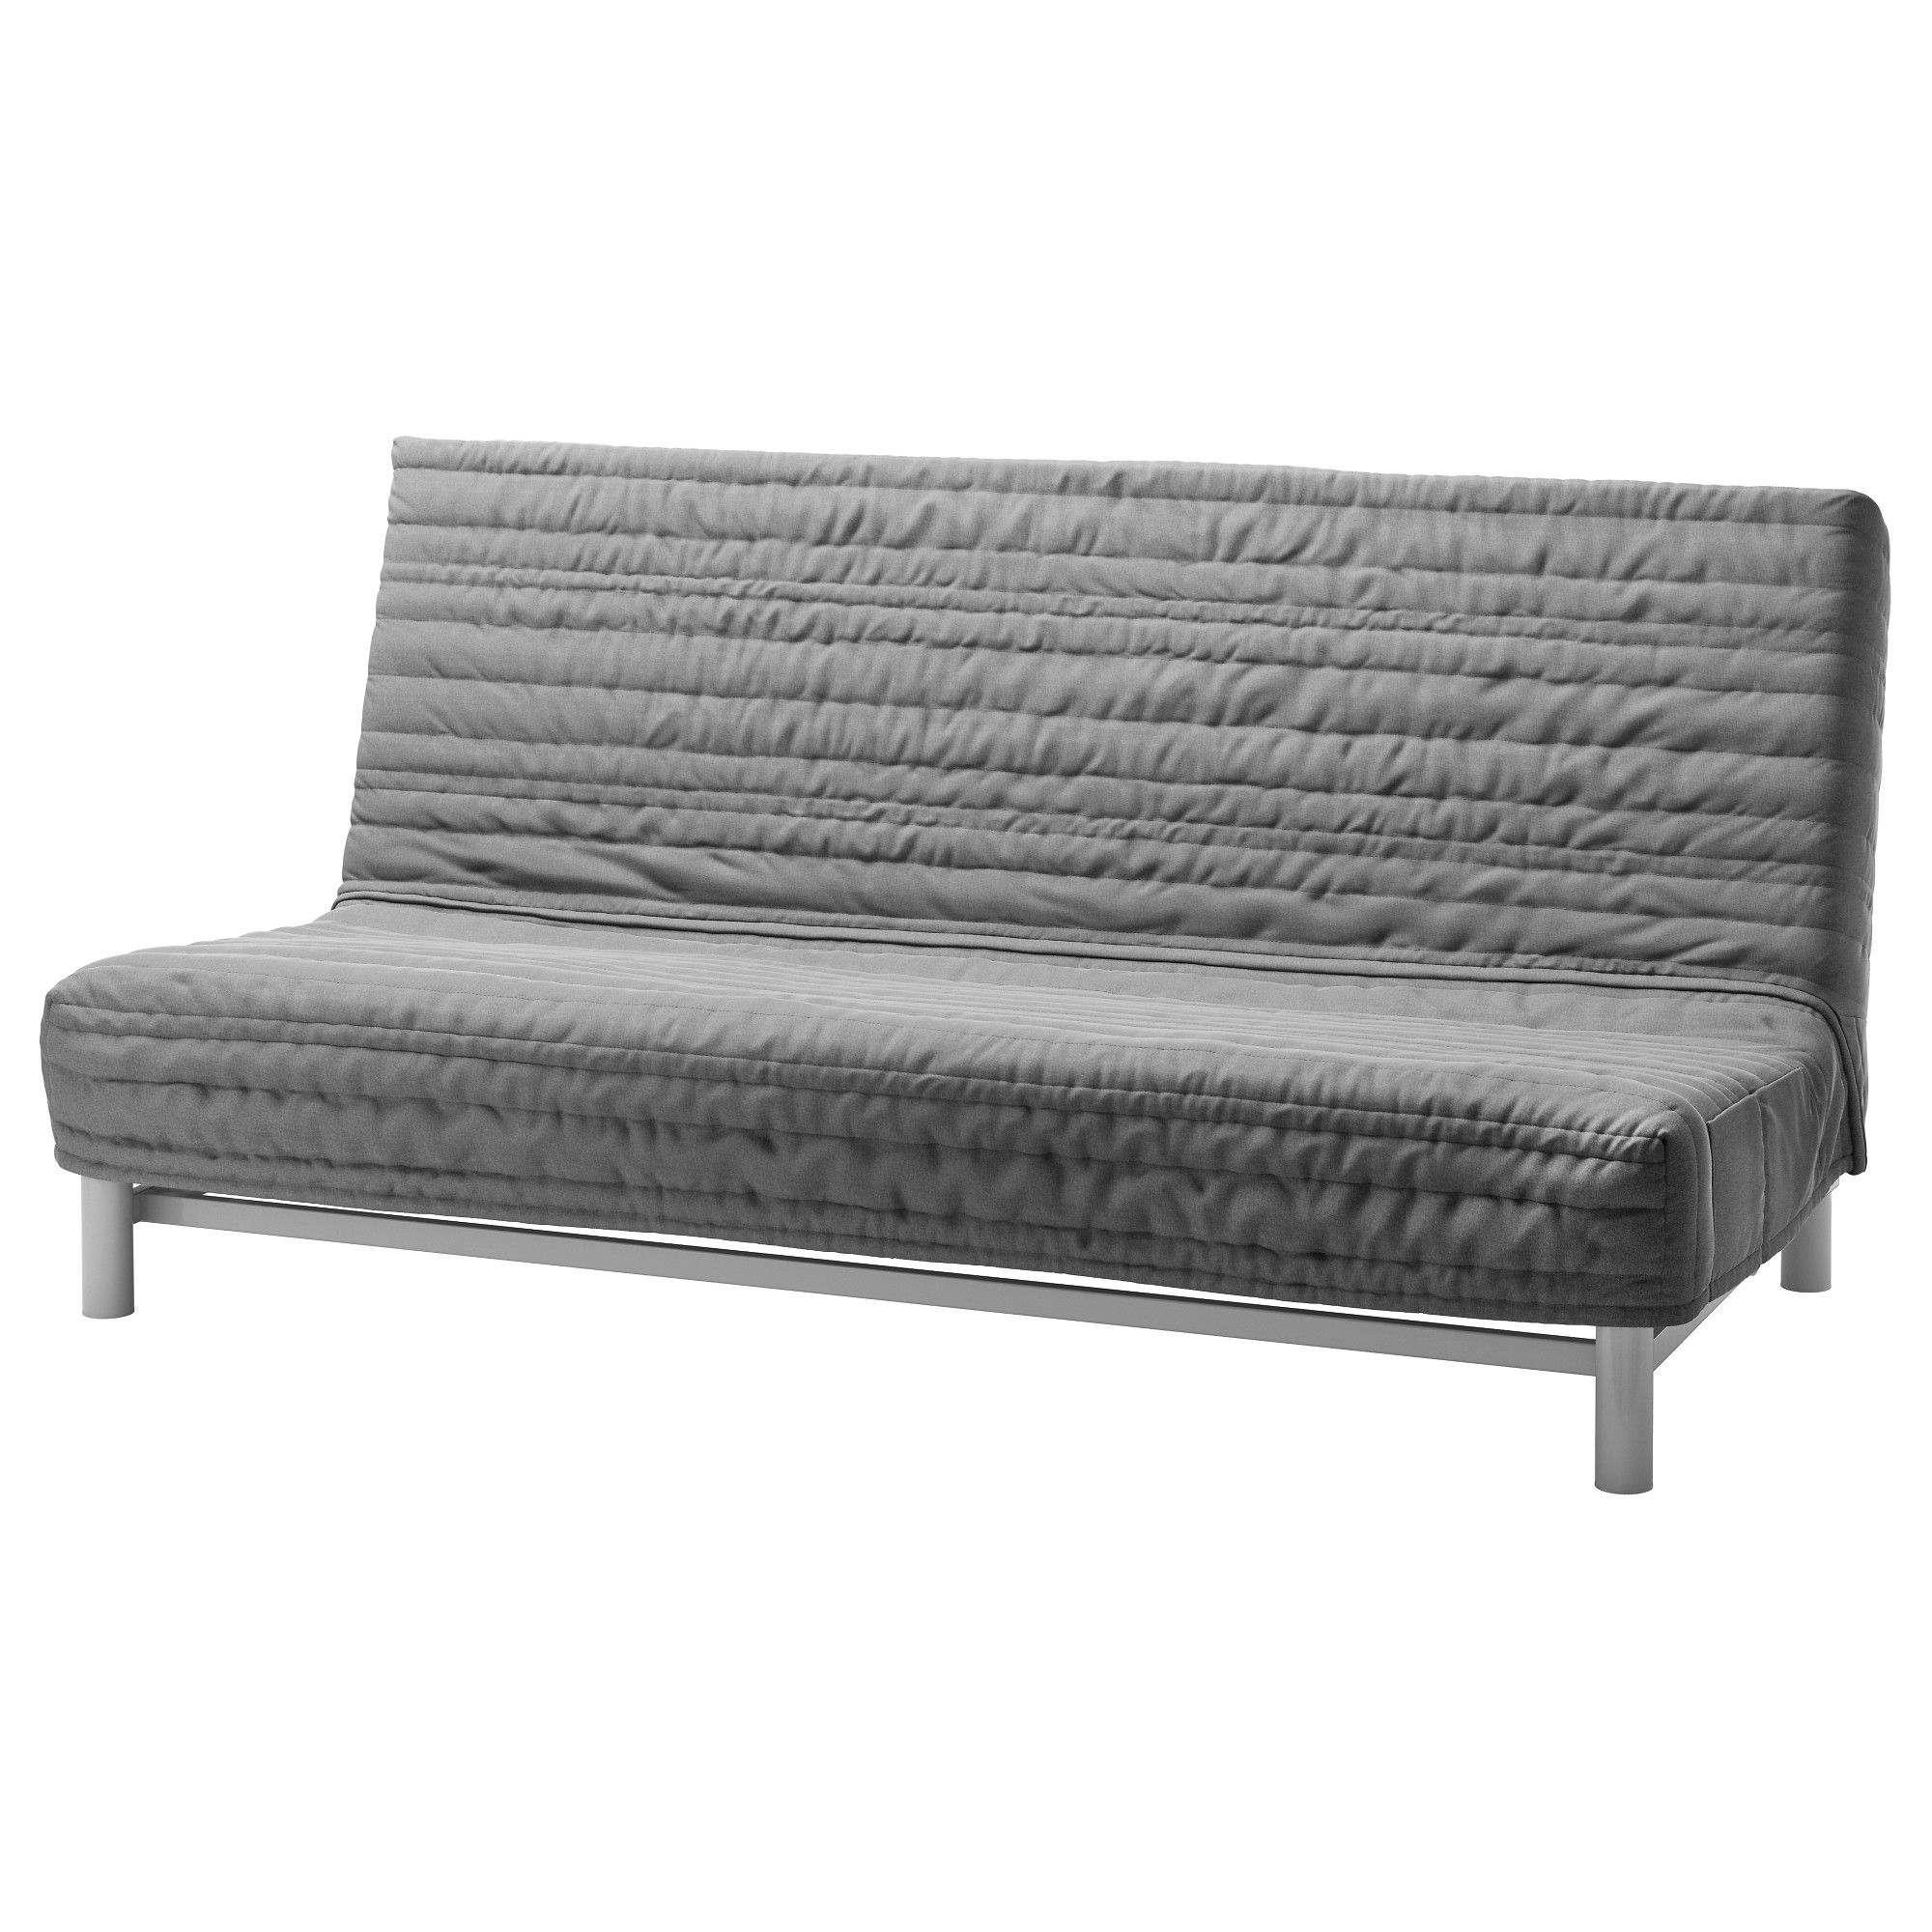 extra firm sofas sofa factory birmingham opening times beddinge lÖvÅs sleeper knisa light gray foam mattress